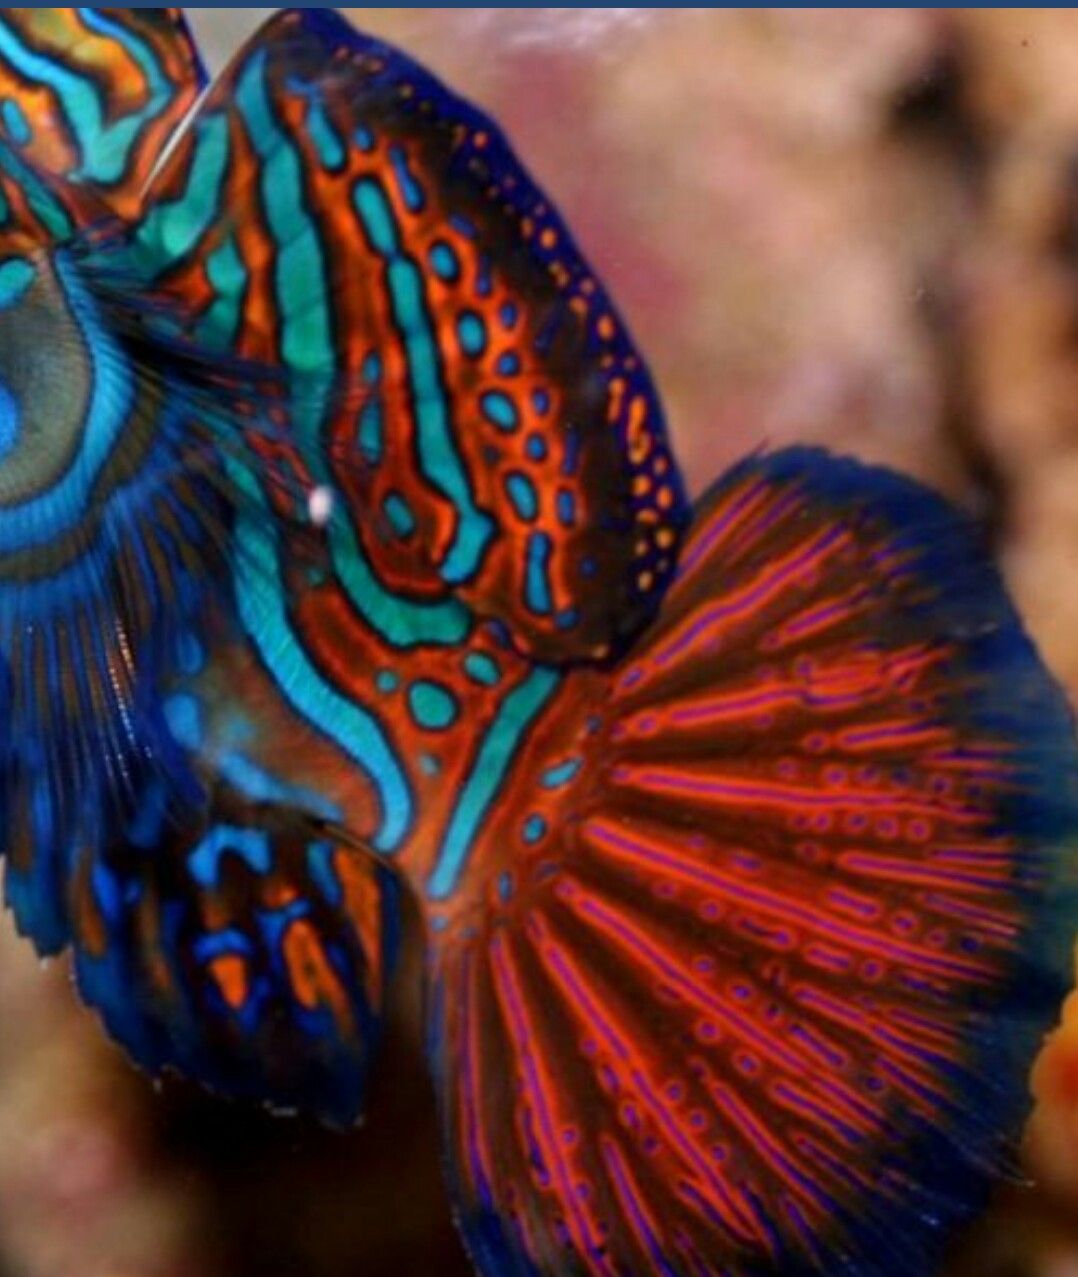 Pin by Ana Lucia on Mandarin fish | Pinterest | Mandarin fish